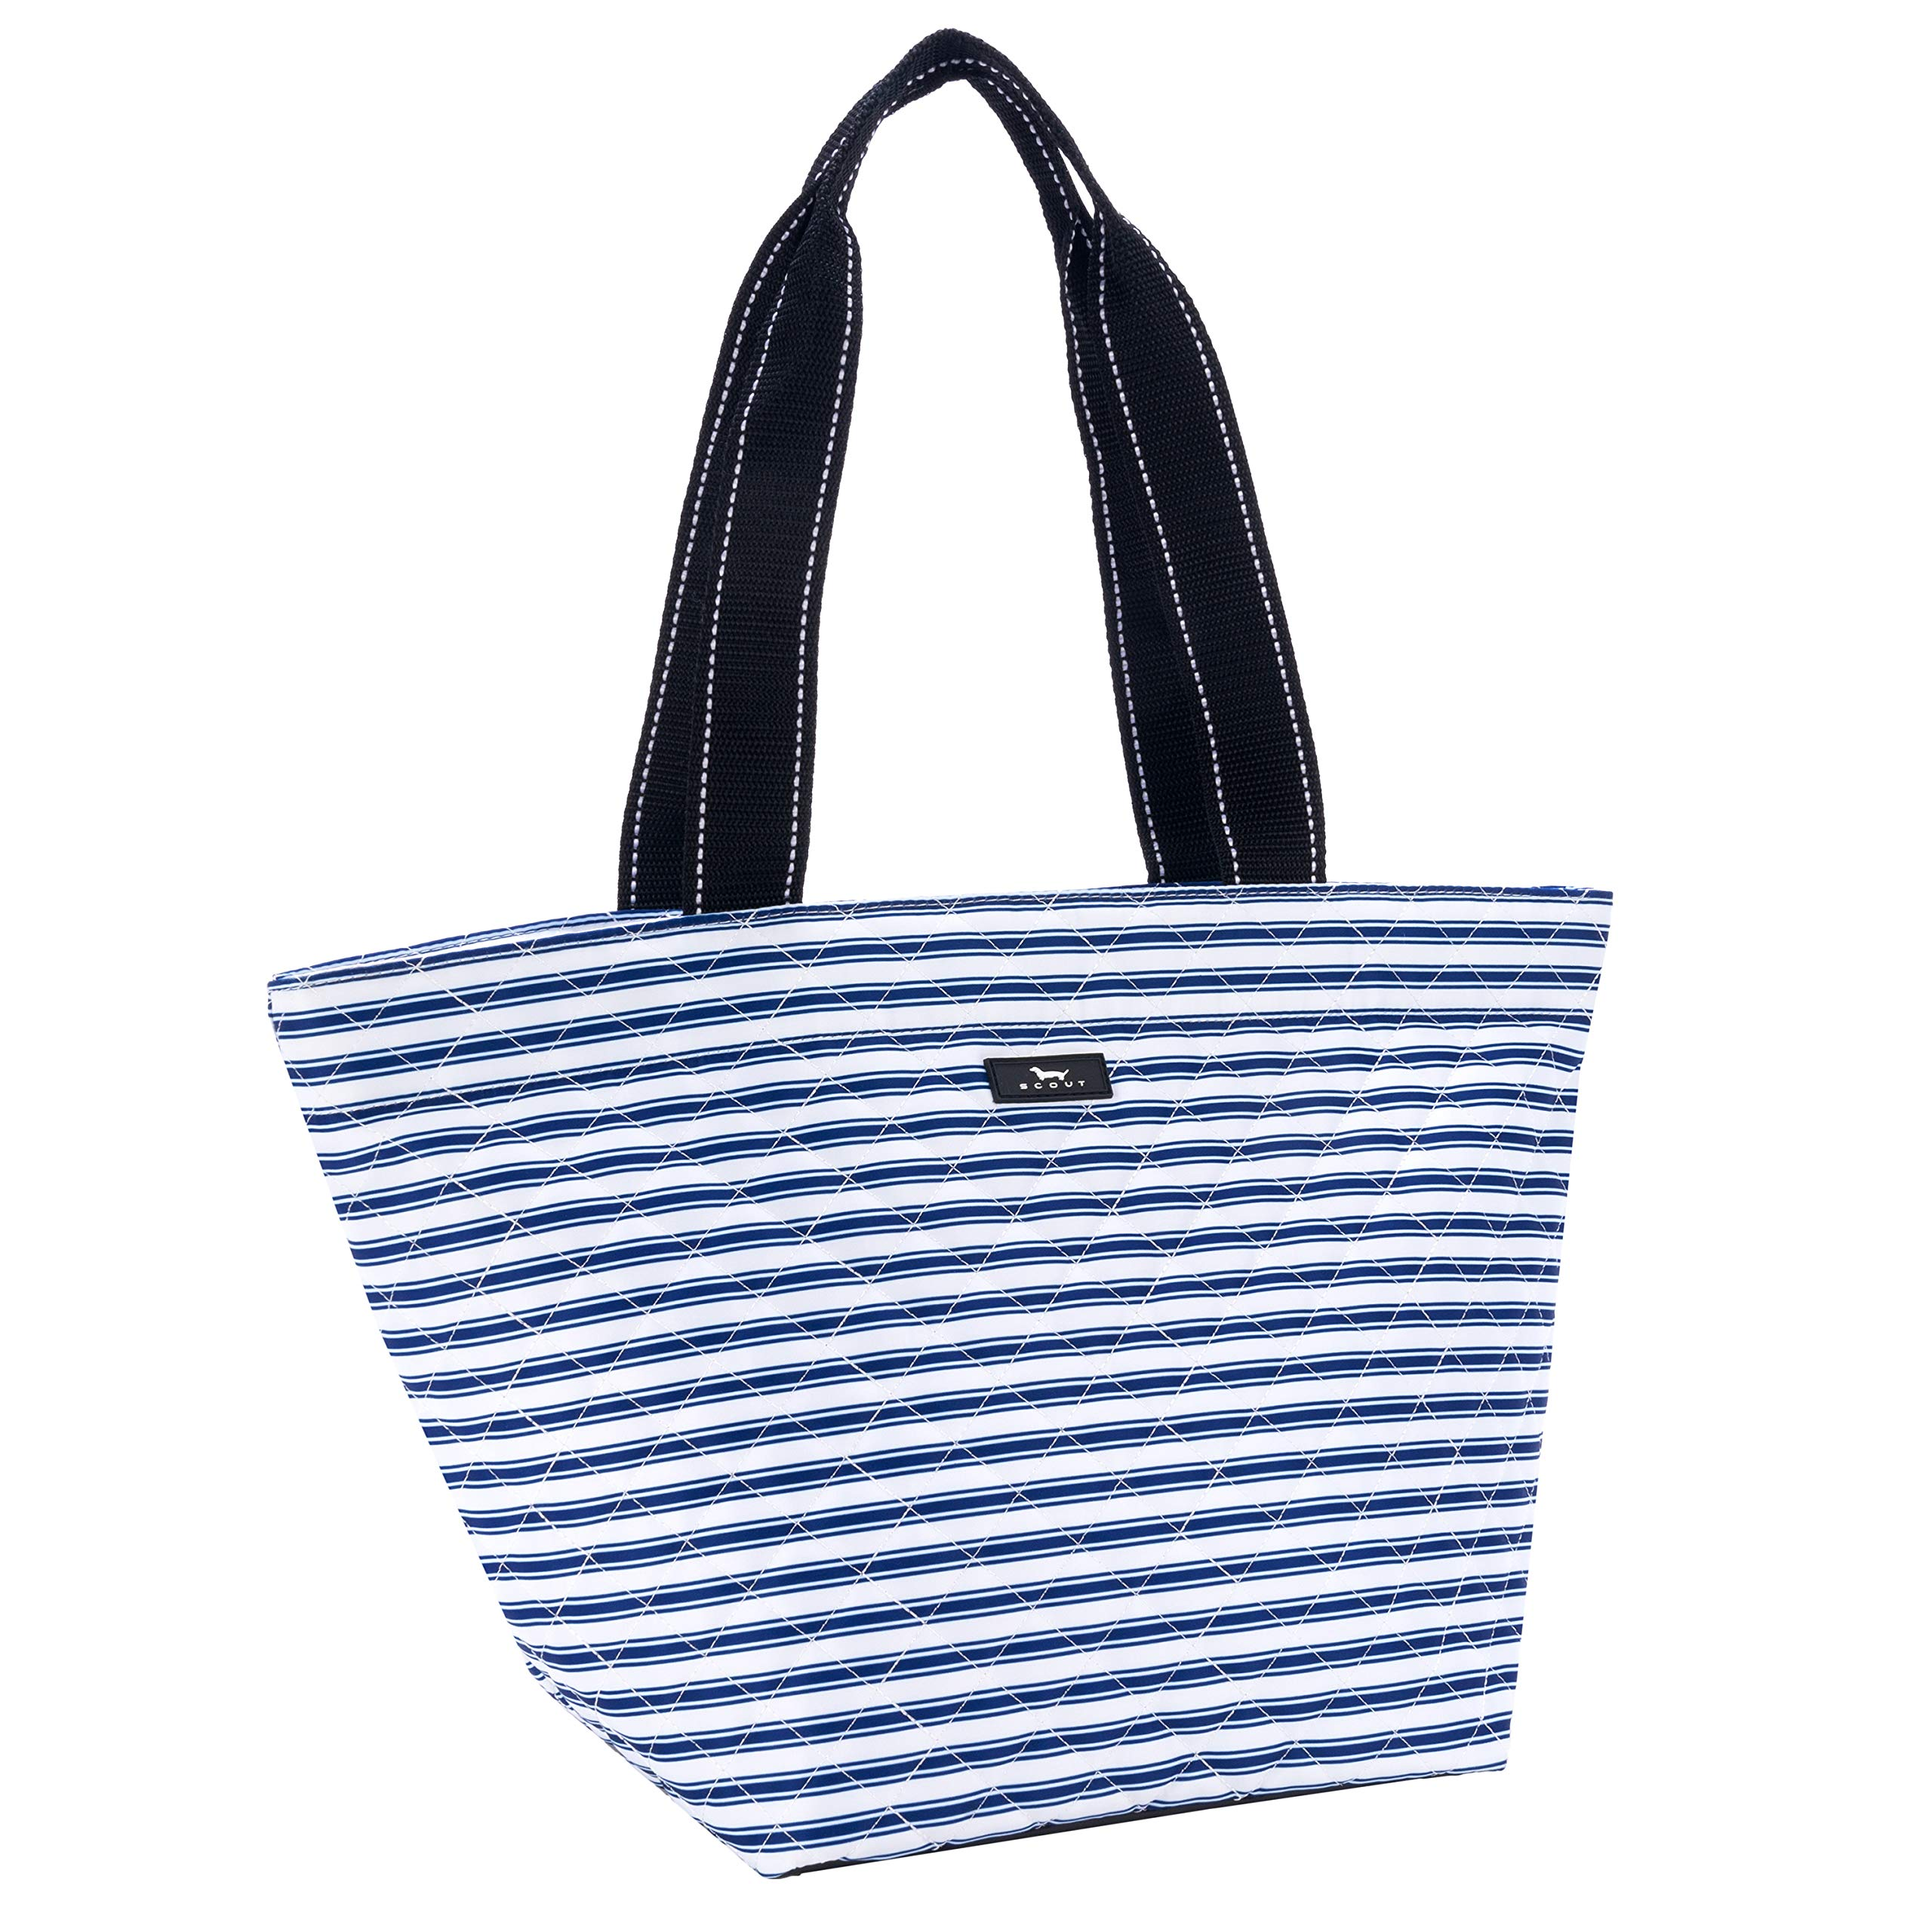 SCOUT Daytripper Everyday Tote Bag, Shoulder Bag, Water Resistant, Wipes Clean, Zips Closed, Stripe Right